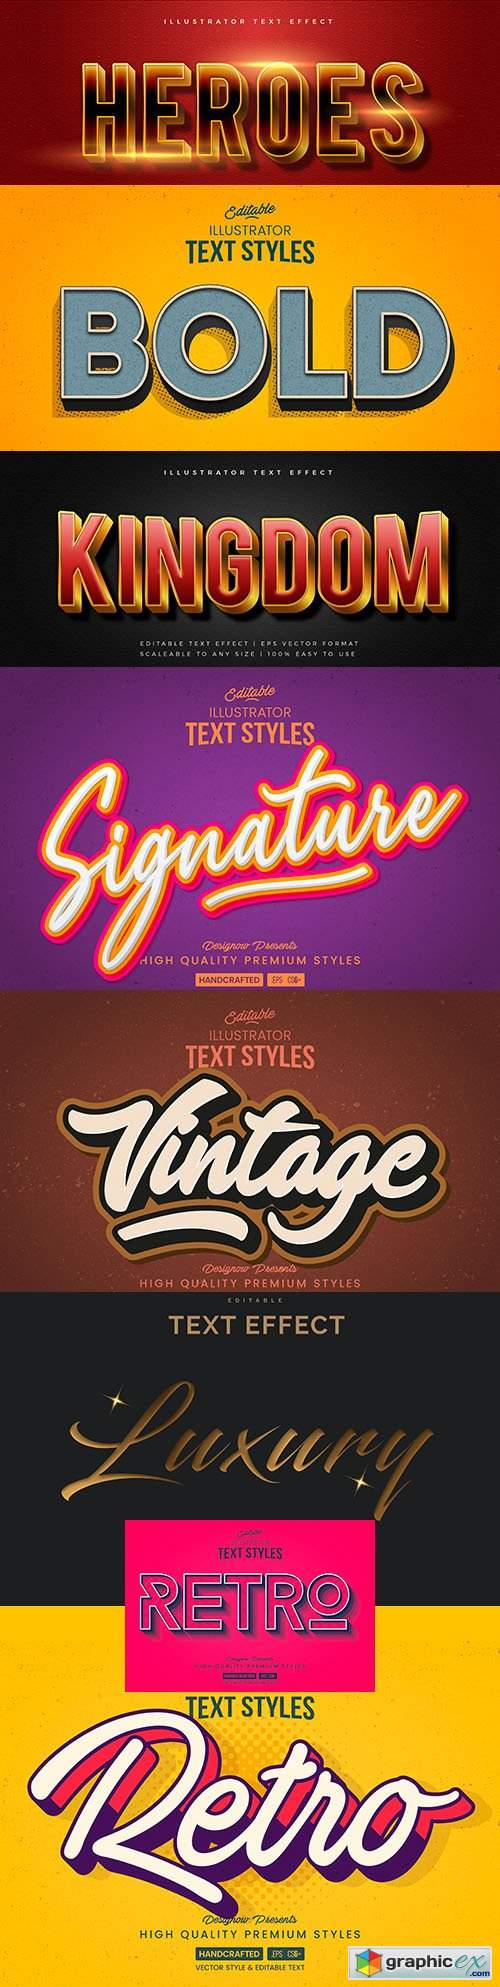 Editable font effect text collection illustration design 210